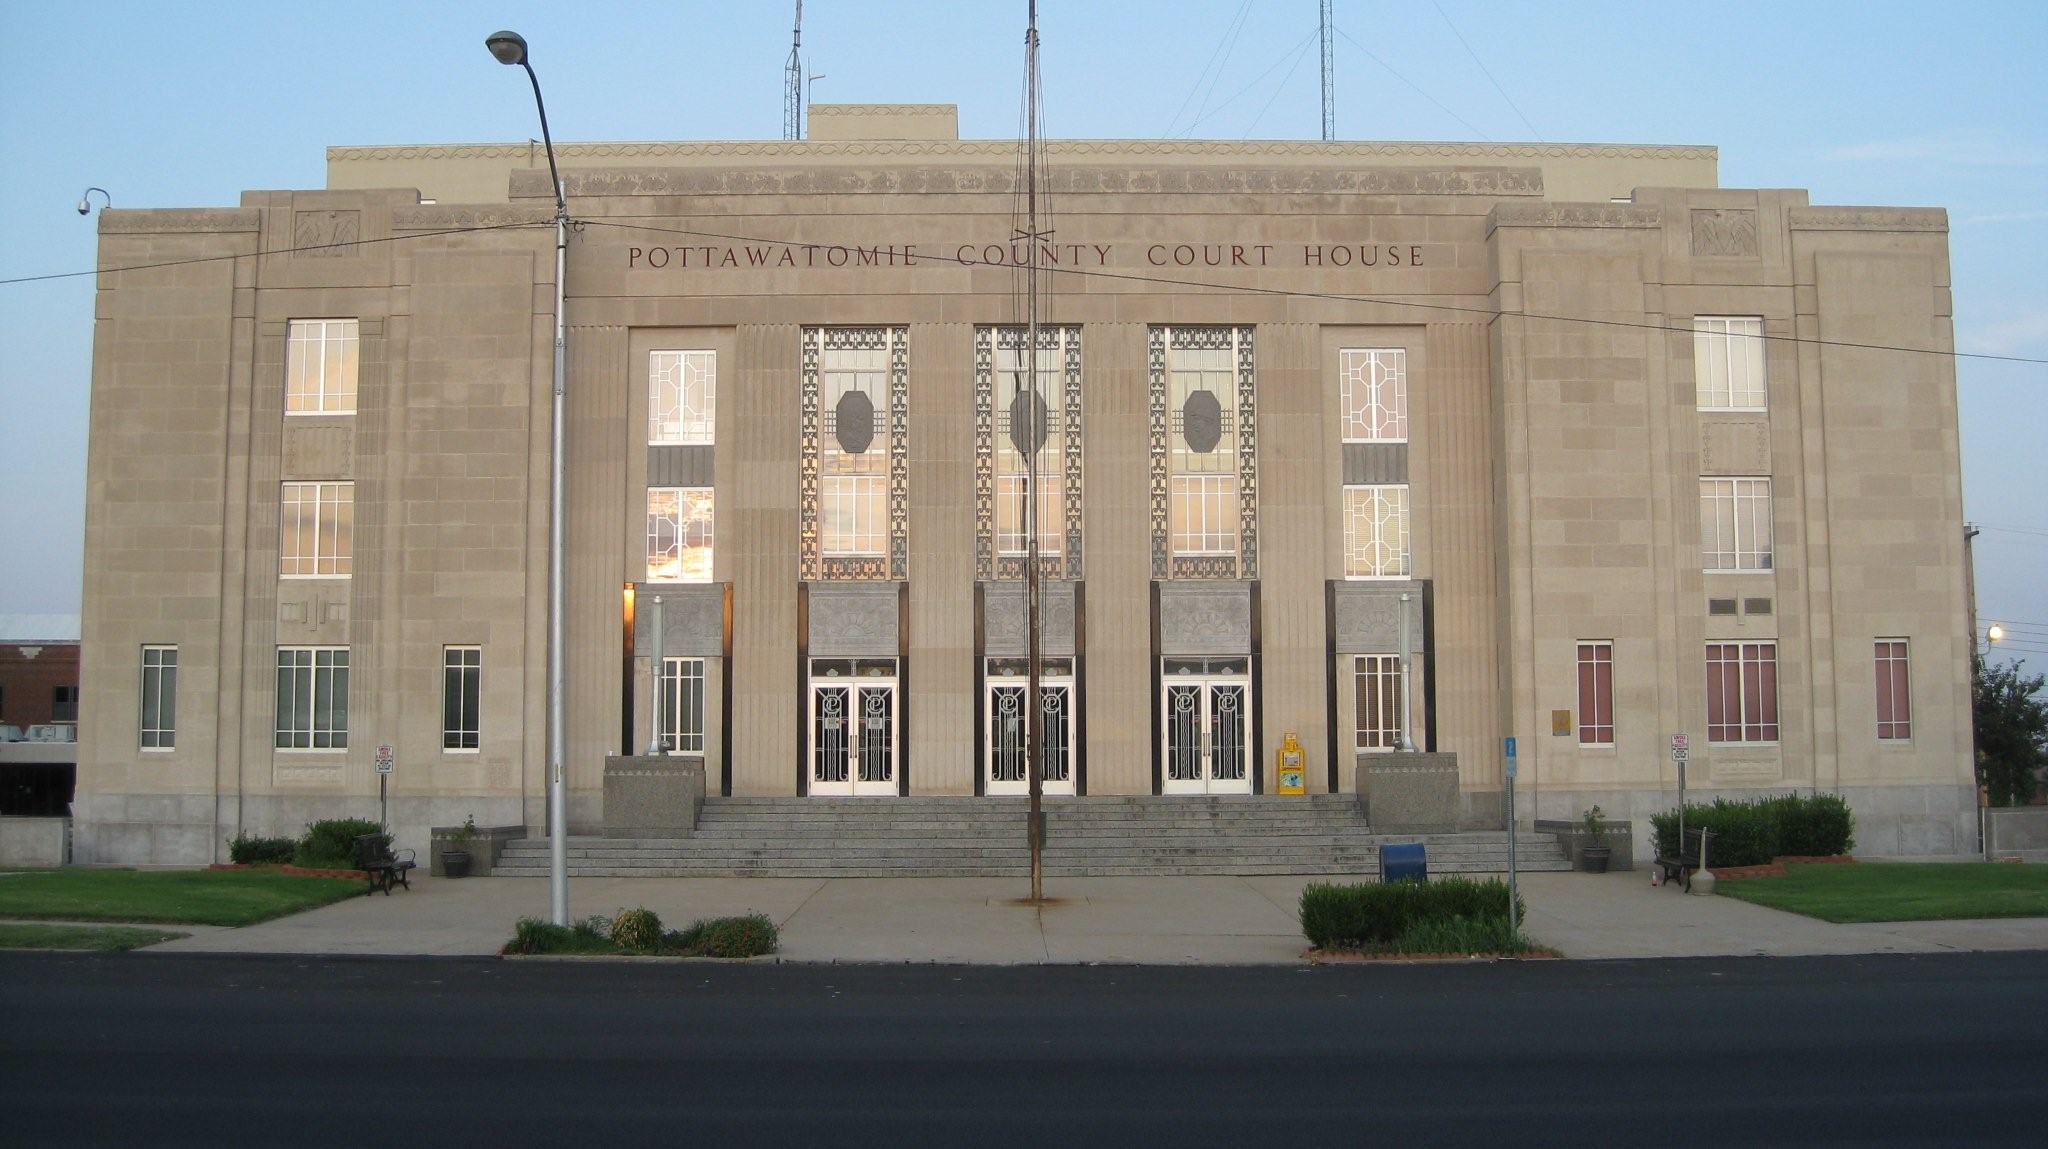 Pottawatomie Co. Court House, Broadway, Shawnee OK.  27 Aug. 2008